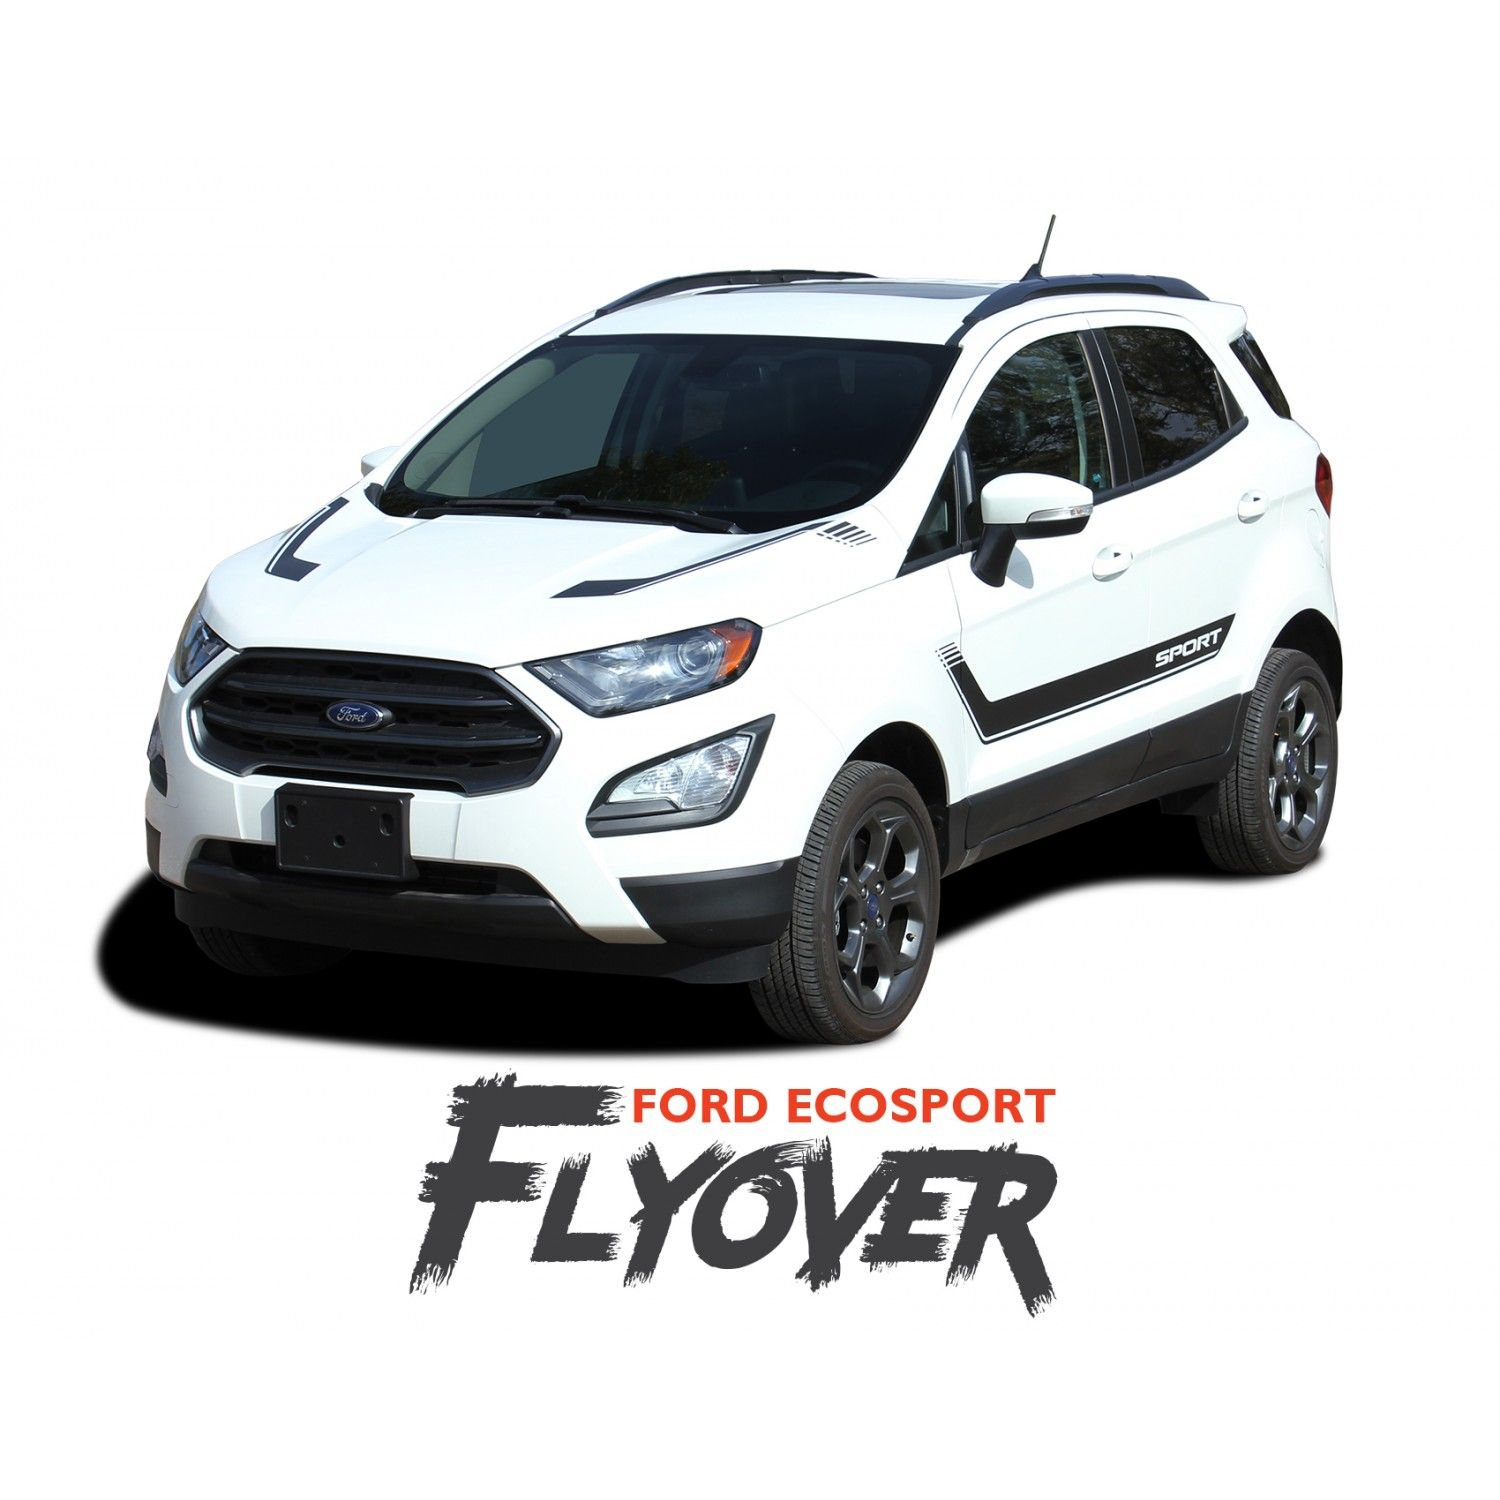 Ford Ecosport Door Stripes And Hood Vinyl Graphics Flyout Decal